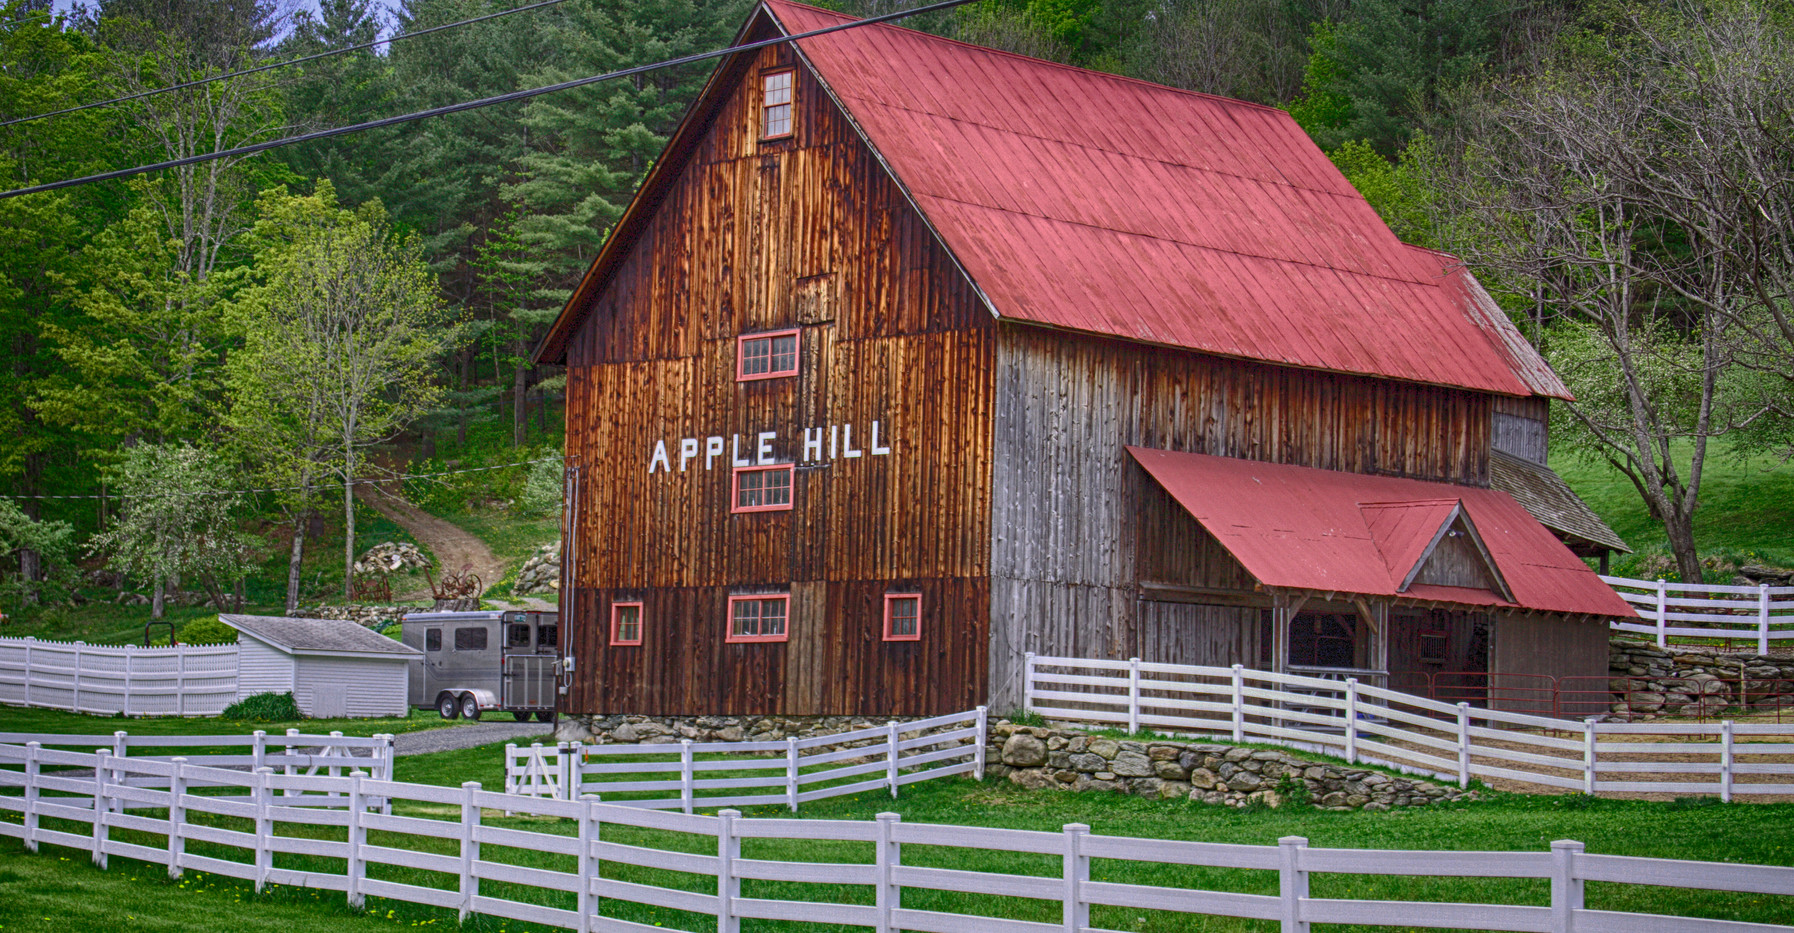 The Barn At Apple Hill